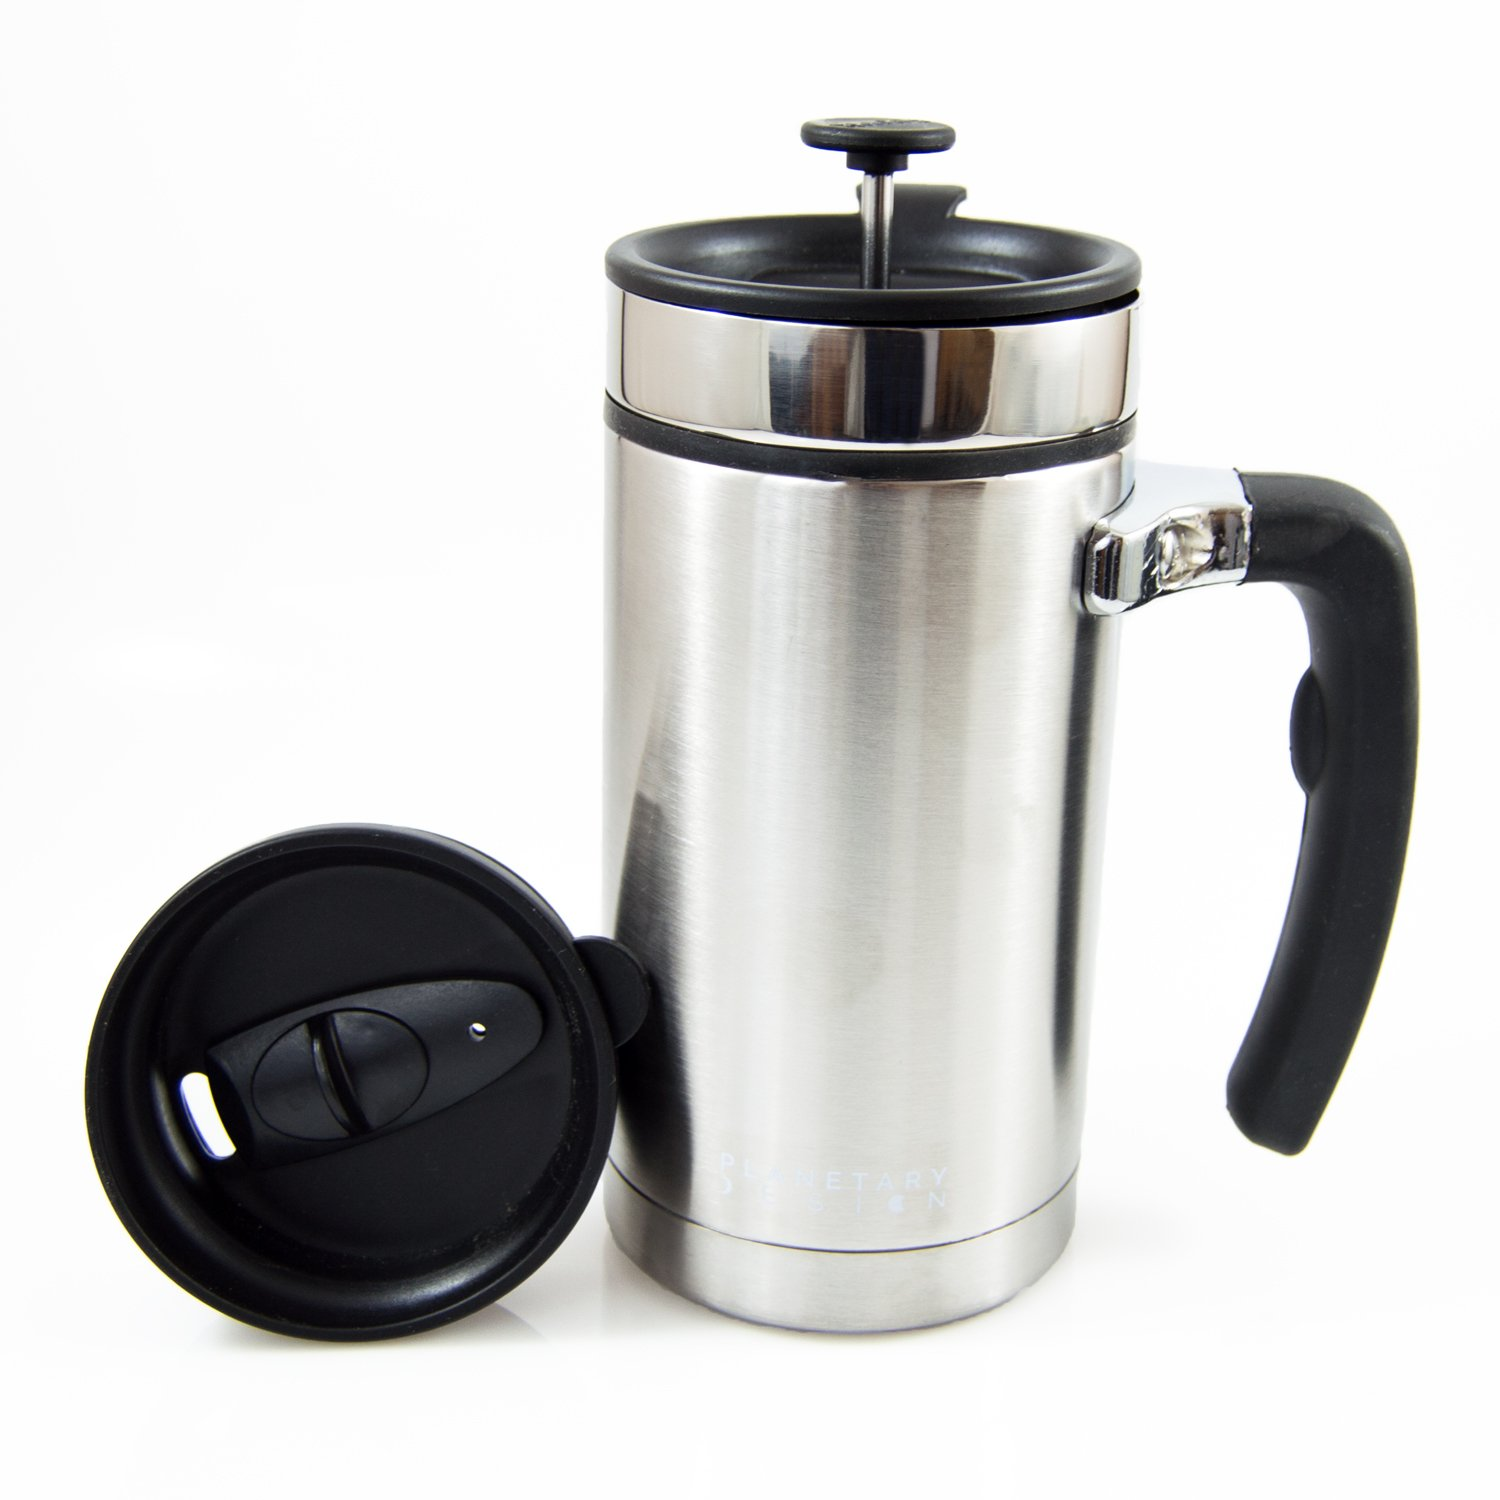 Planetary Design Desk Press Coffee Travel Mug - French Press with Bru-Stop Technology - 2 Spill Proof Lids - 20oz - Brushed Steel,Stainless Steel